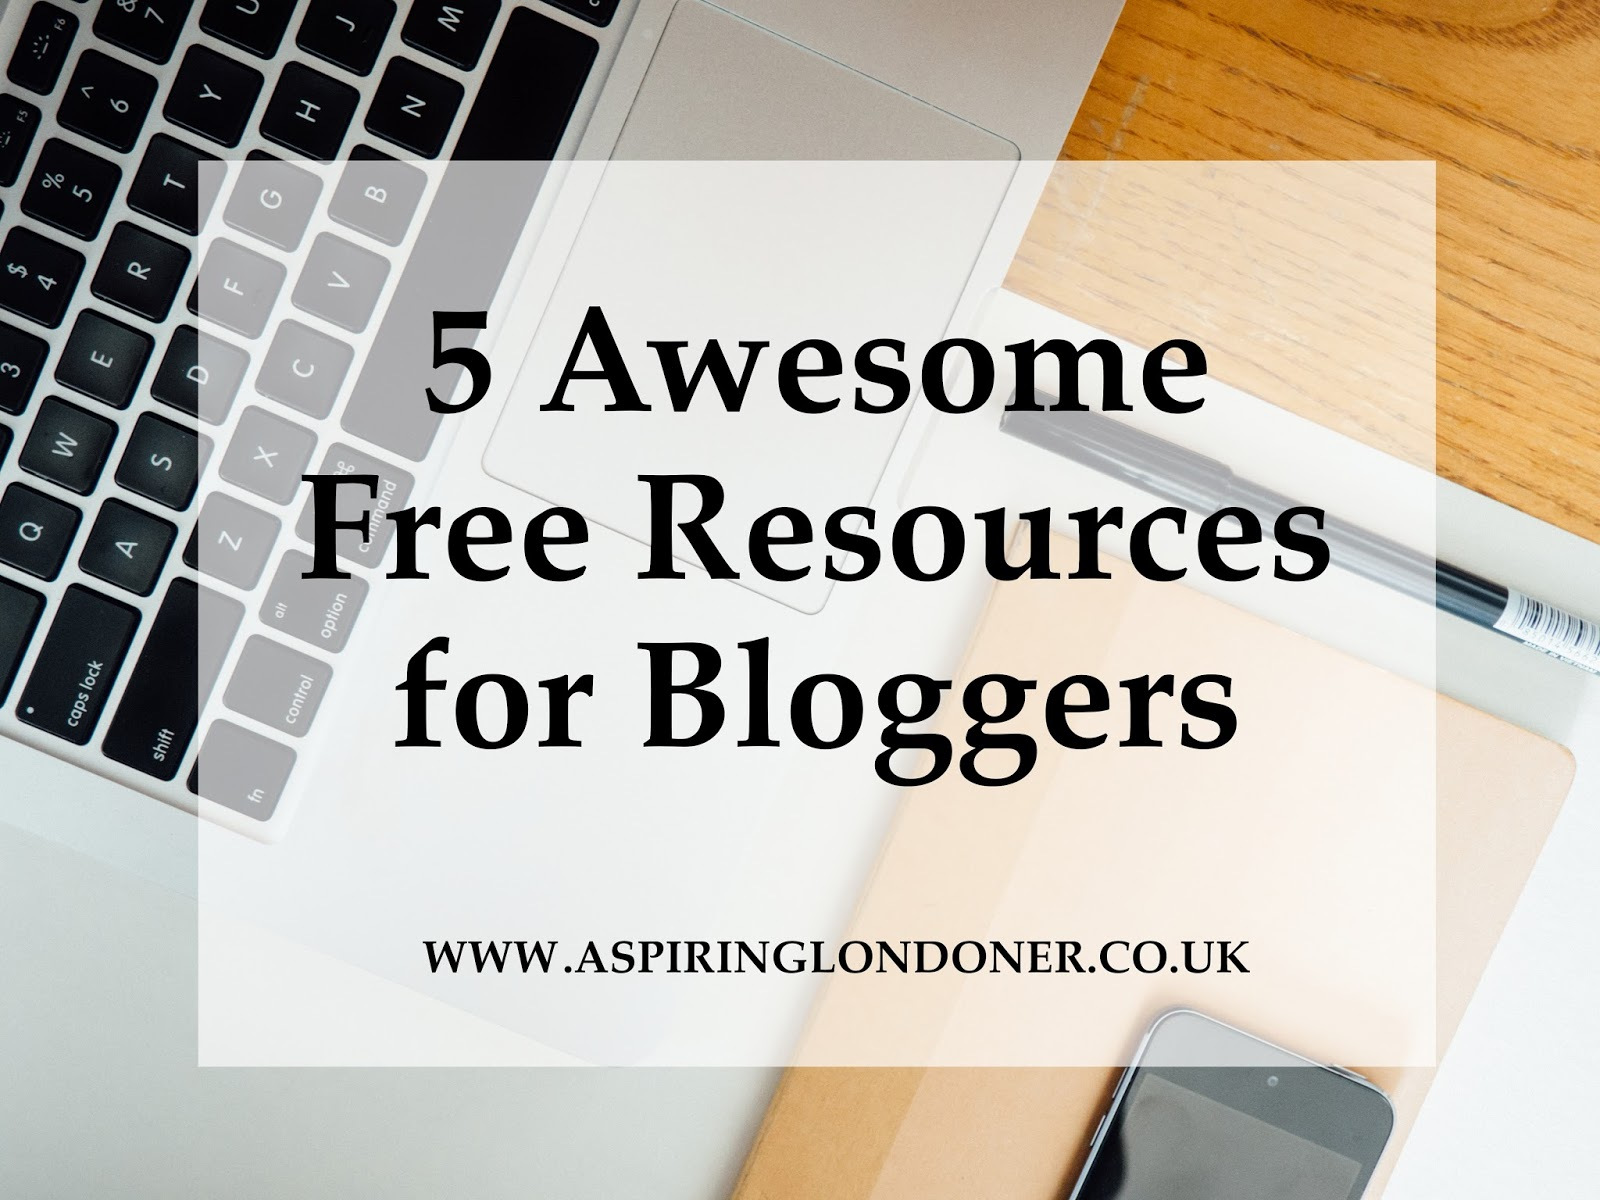 5 Awesome Free Resources for Bloggers - Aspiring Londoner